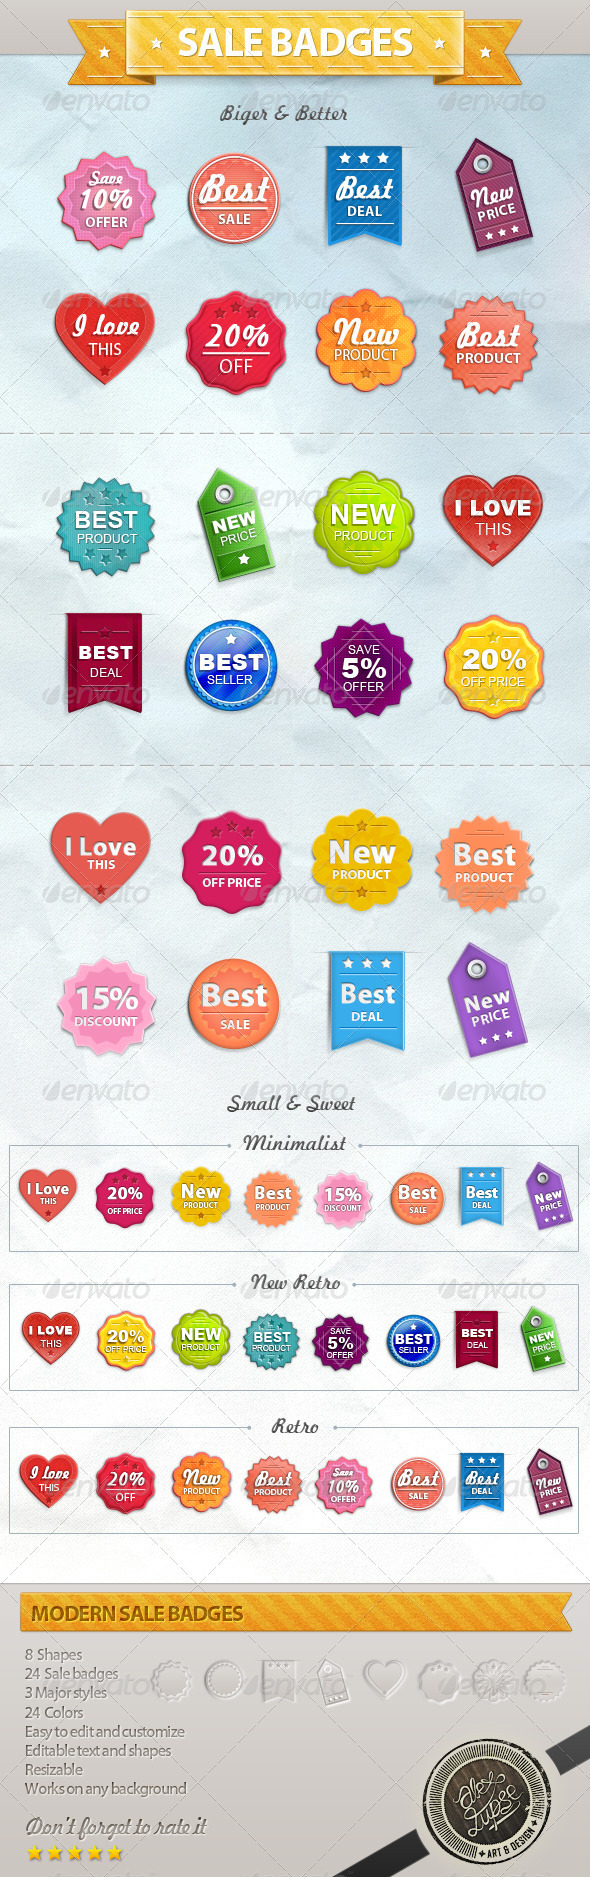 Sale Badges and Tags - Badges & Stickers Web Elements